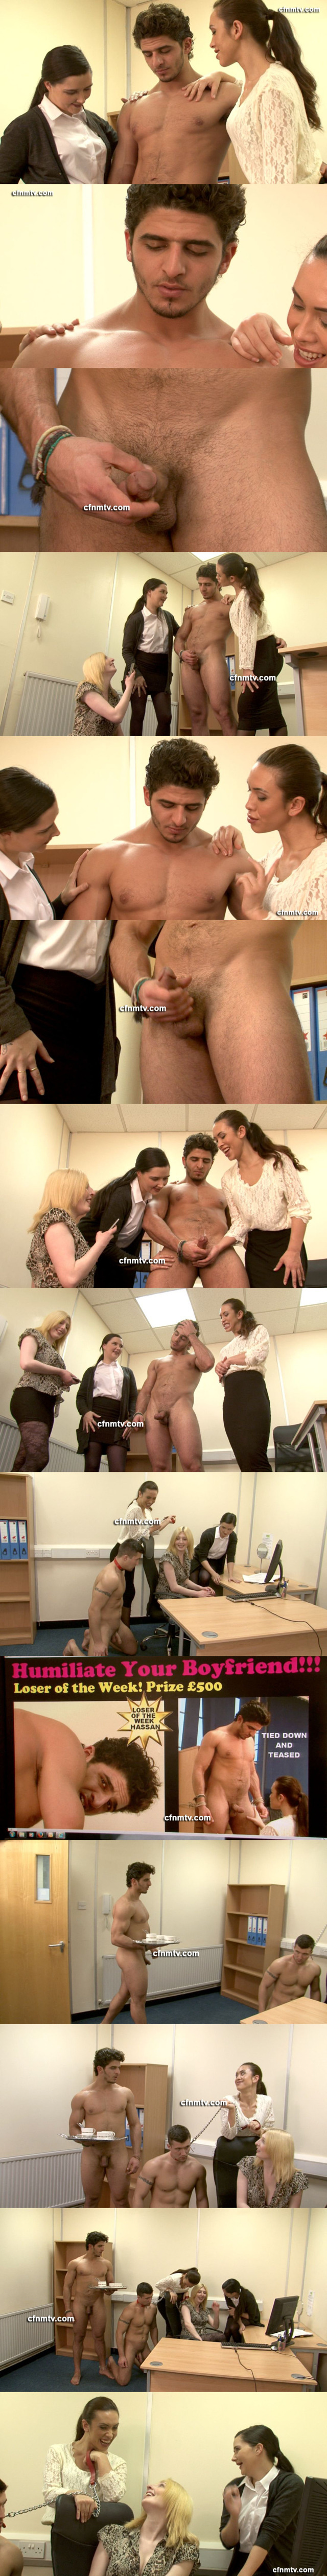 straight-guy-naked-humiliated-by-girls-cfnm